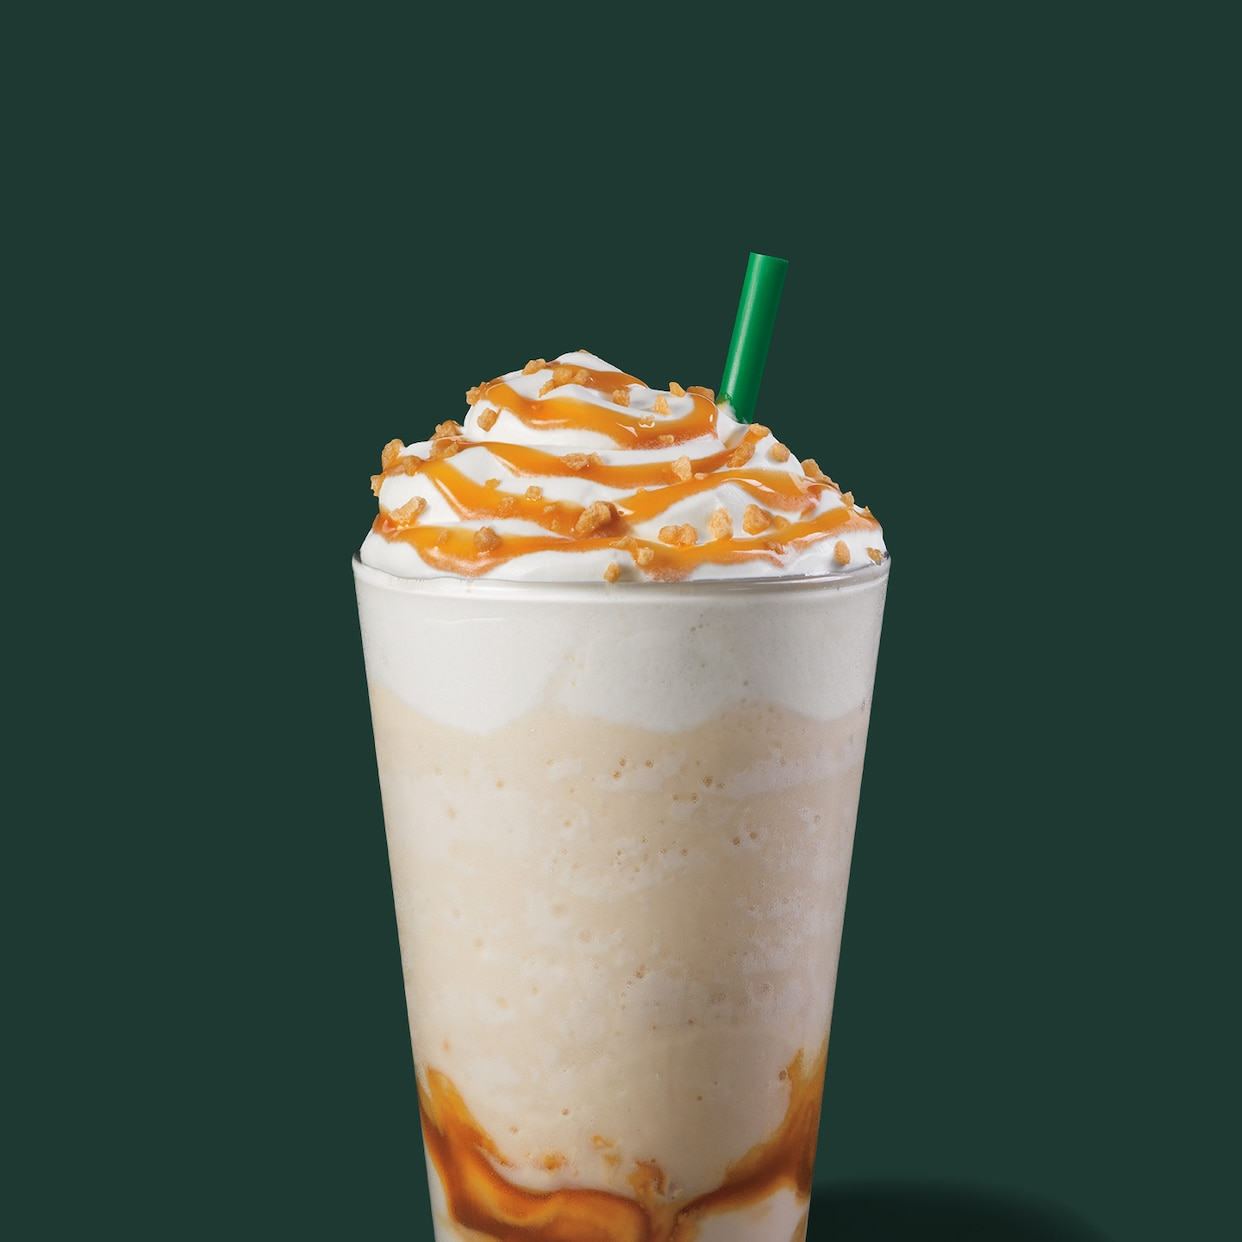 Caramel Ribbon Crunch Creme Frappuccino Blended Beverage Starbucks Coffee Company